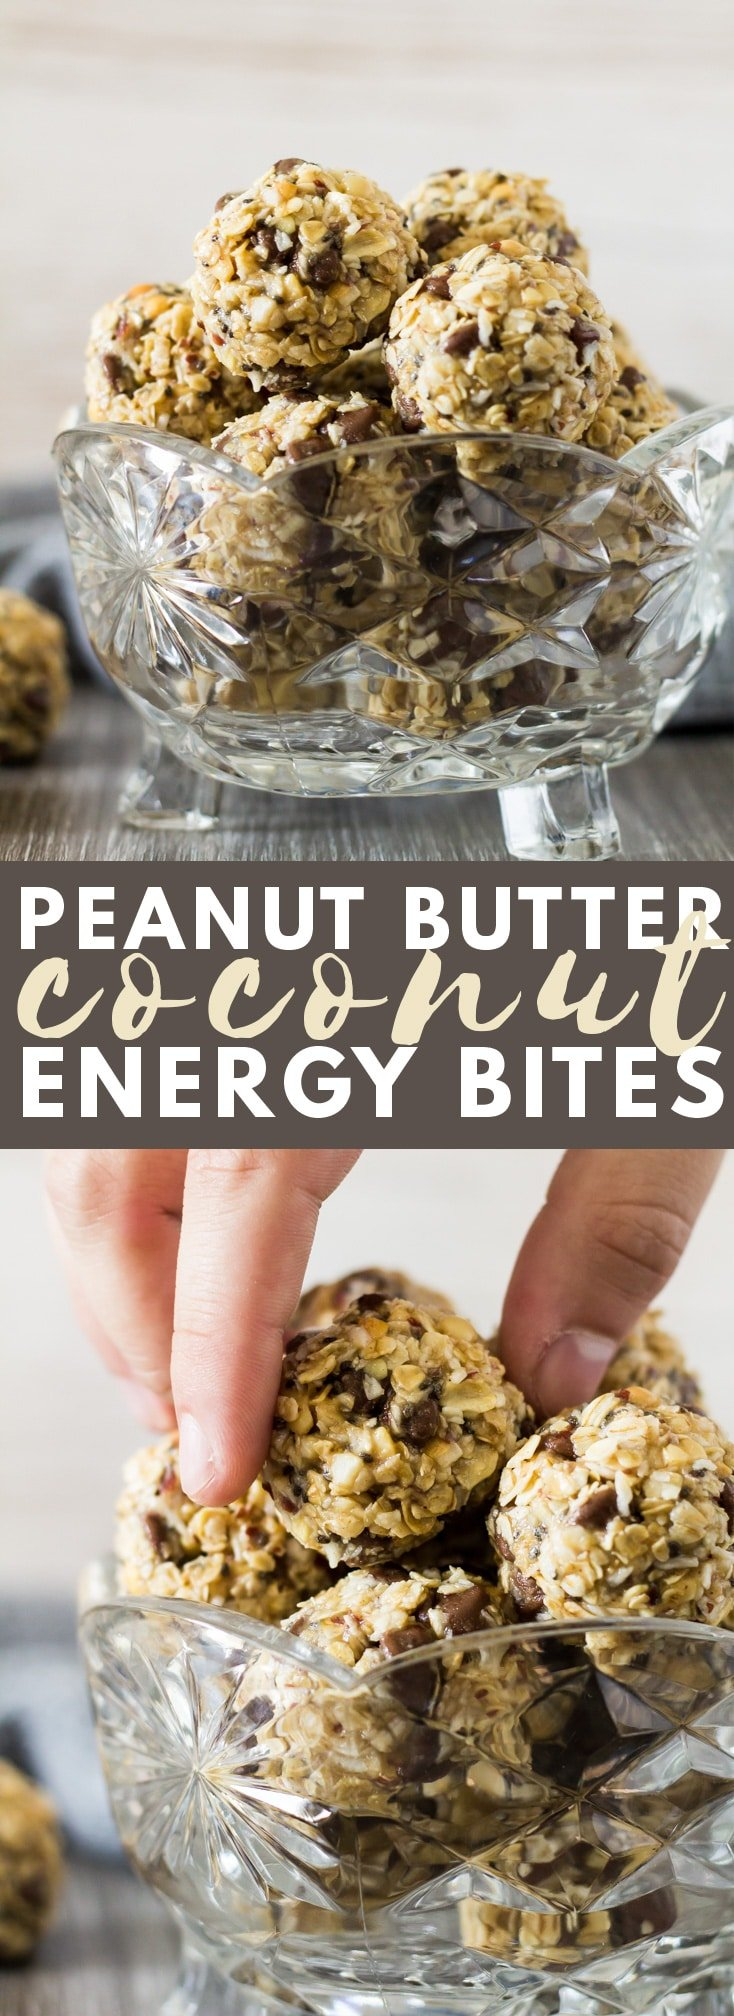 No-Bake Peanut Butter Coconut Energy Bites - Deliciously creamy and fudgy energy bites bursting with peanut butter flavour, and loaded with chocolate chips.A healthy protein-packed breakfast or snack! #peanutbutter #coconut #energybites #healthy #healthysnacks #healthyrecipes